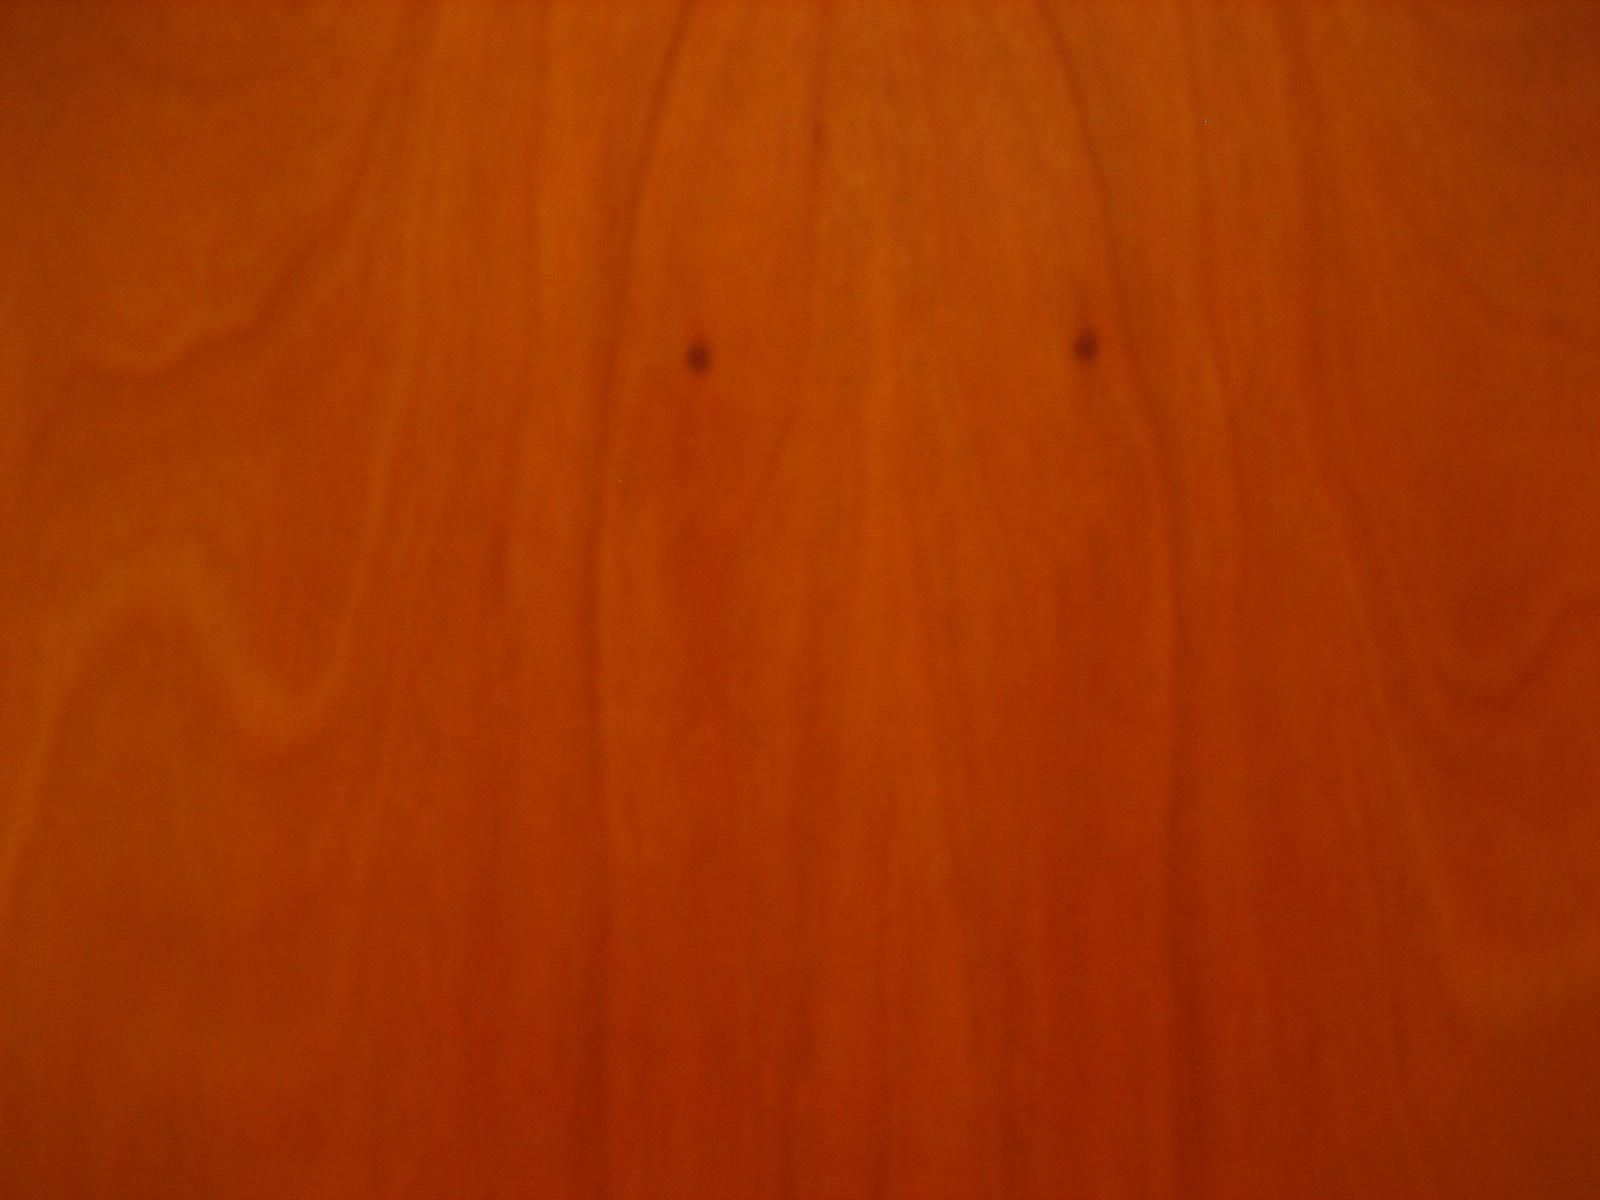 Wood Furniture Texture free picture: surface, wooden, furniture, interior, design, texture